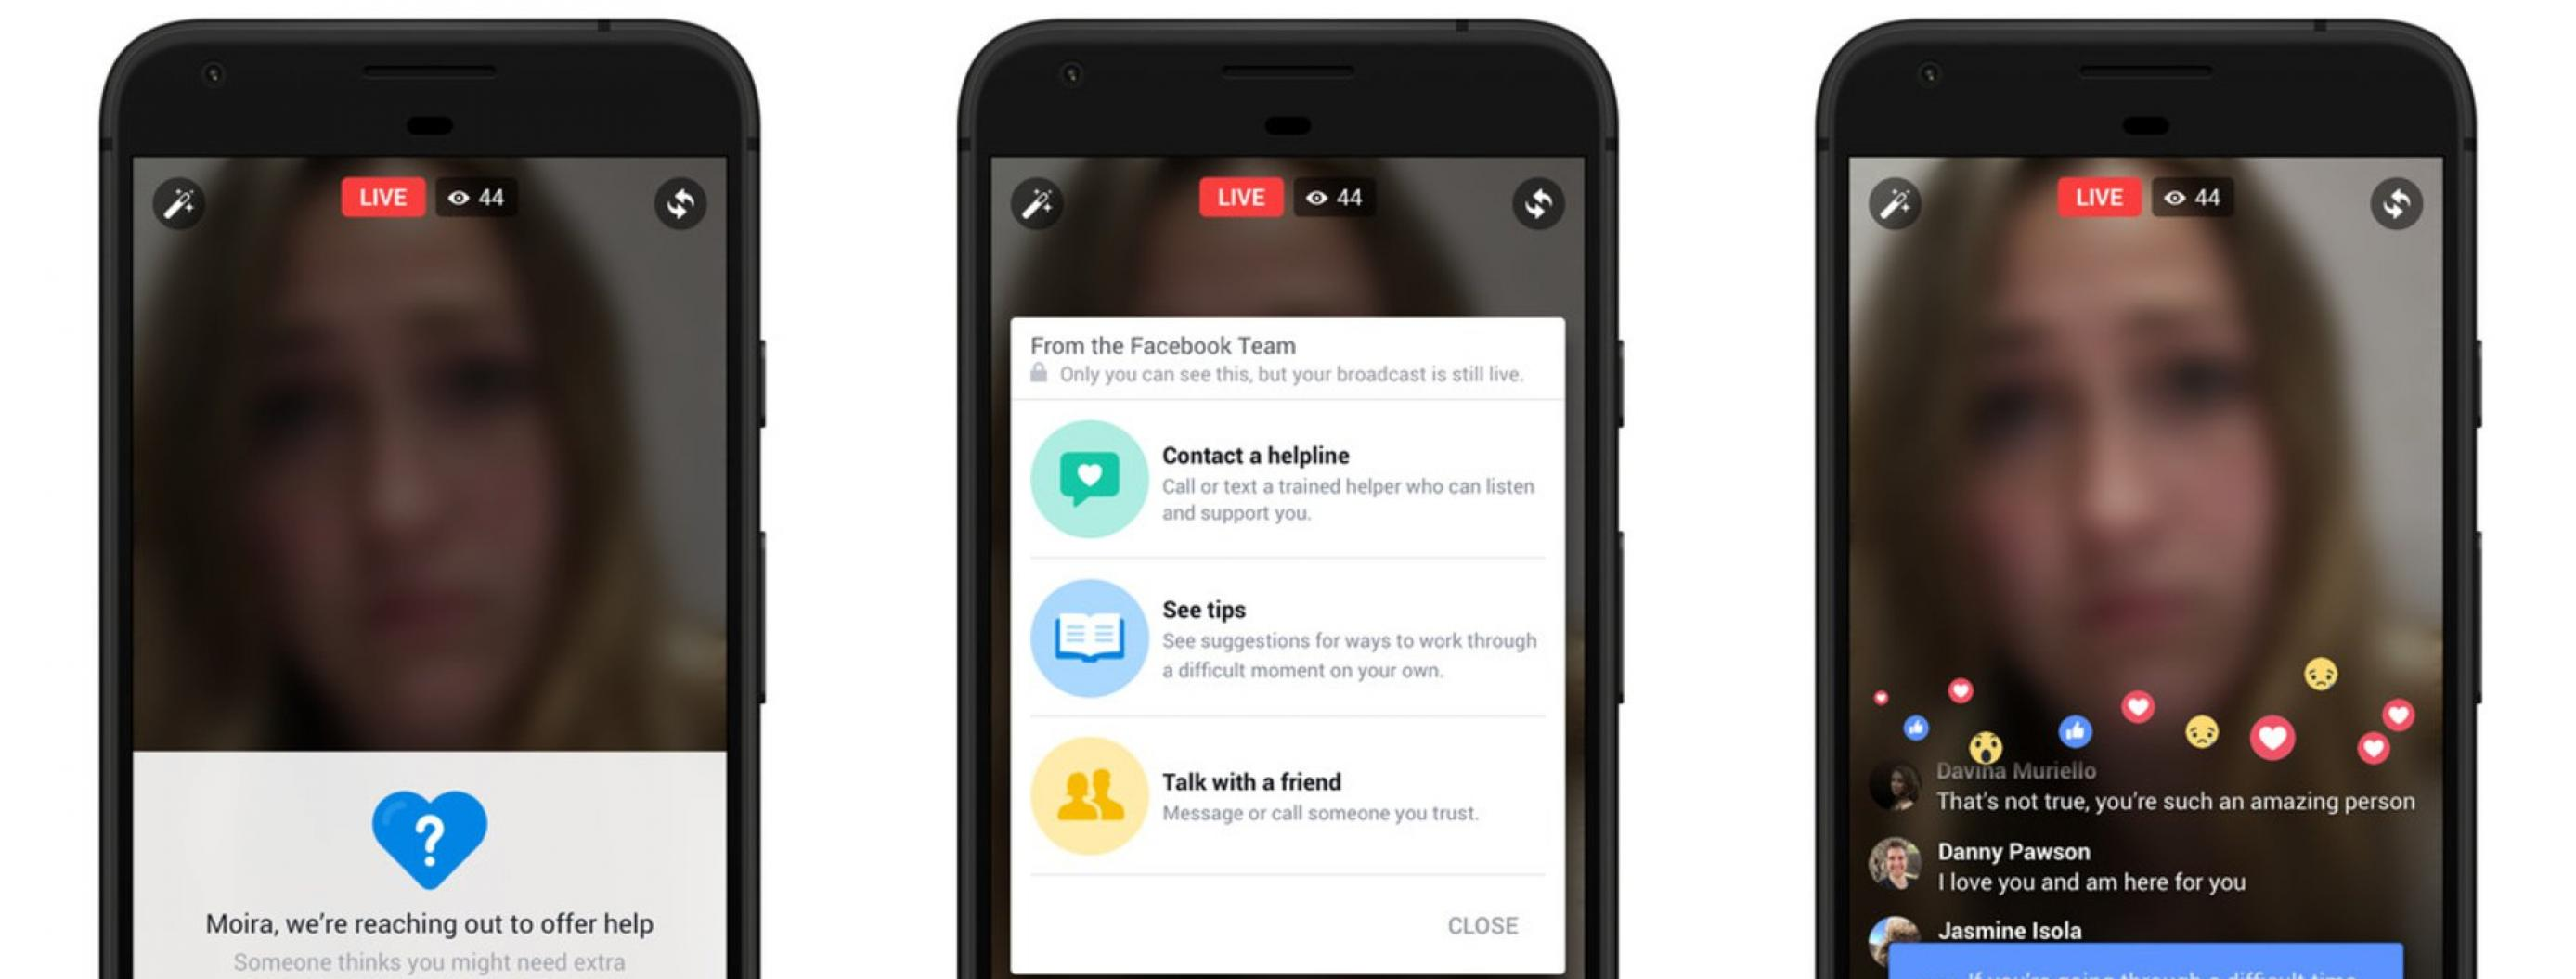 Facebook Rolls Out AI to Help Identify Suicidal Tendencies